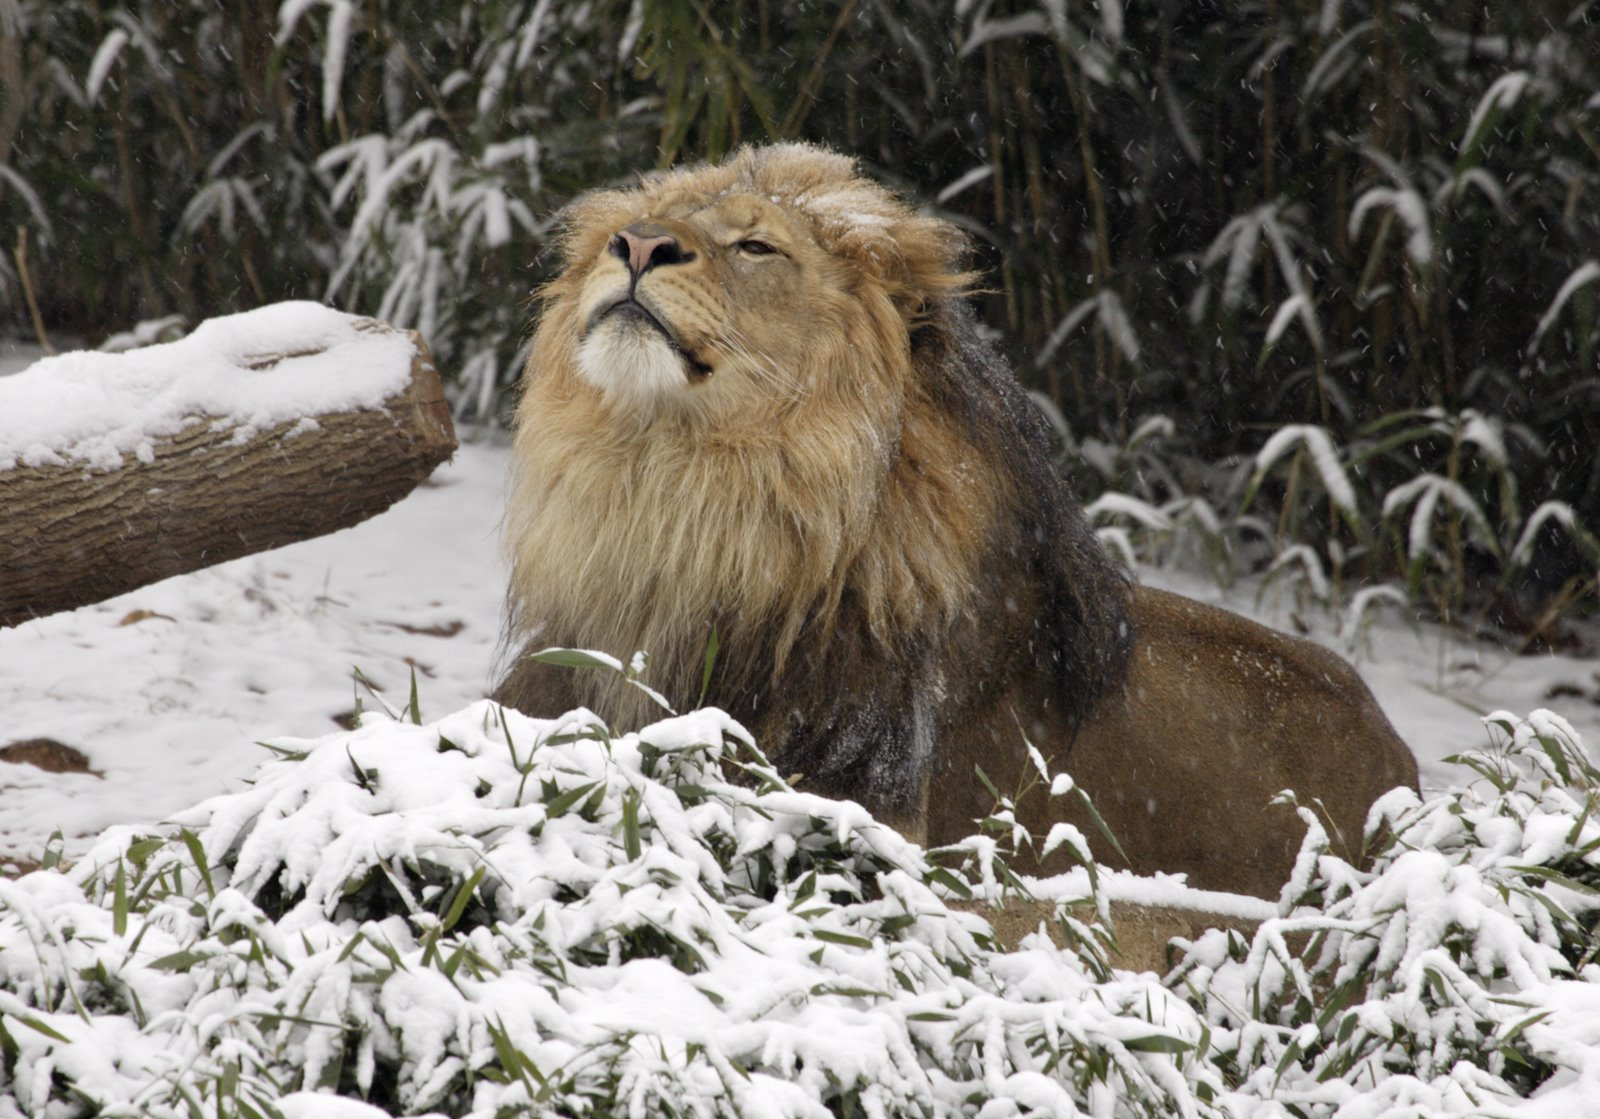 animals snow amazing lion wonderful winter animal cute playing creatures adorable labels